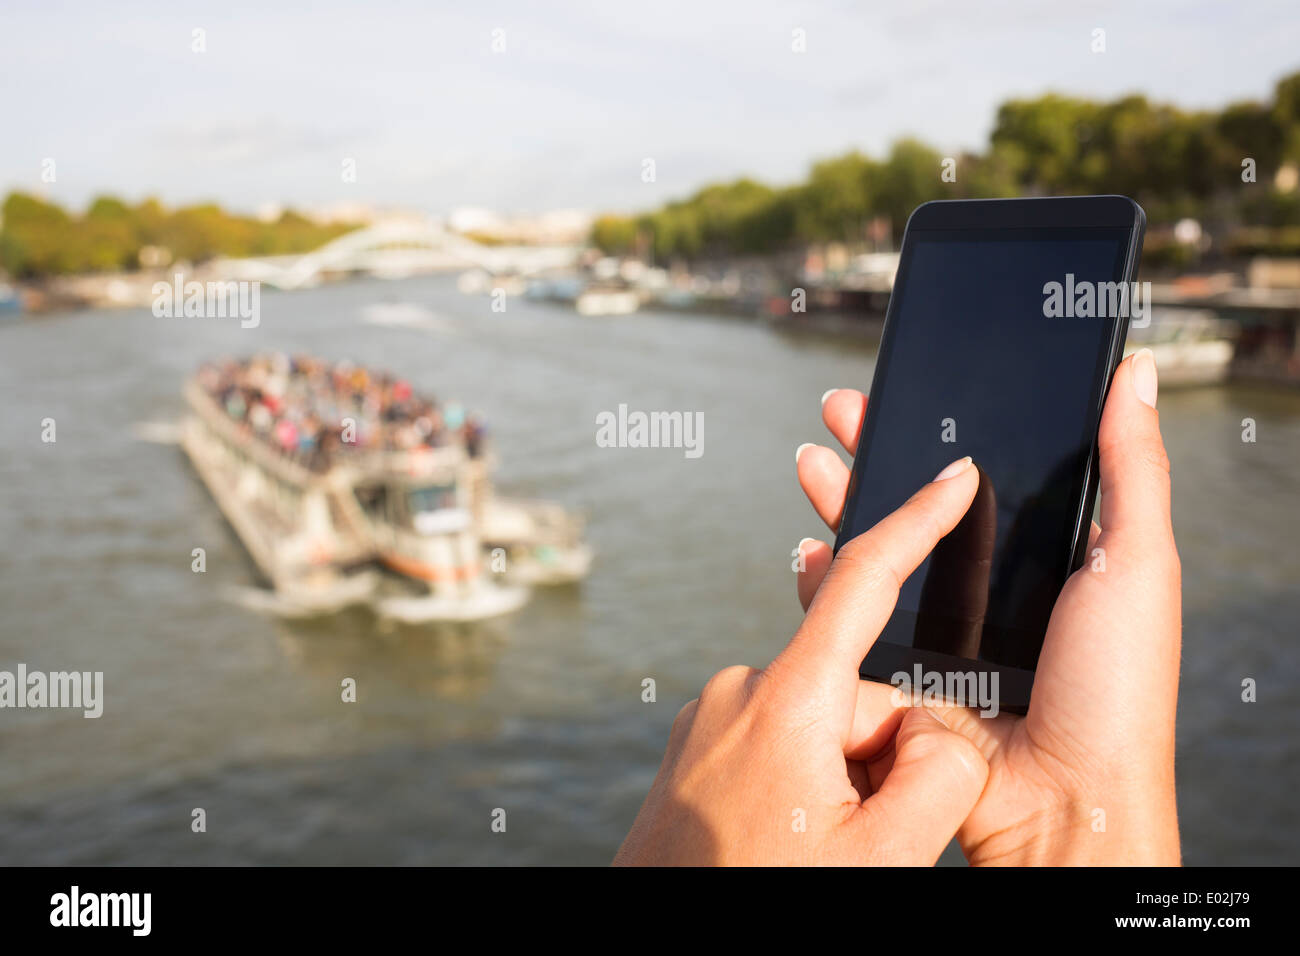 Close up of hands Female mobile phone houseboat seine bridge message sms e-mail - Stock Image